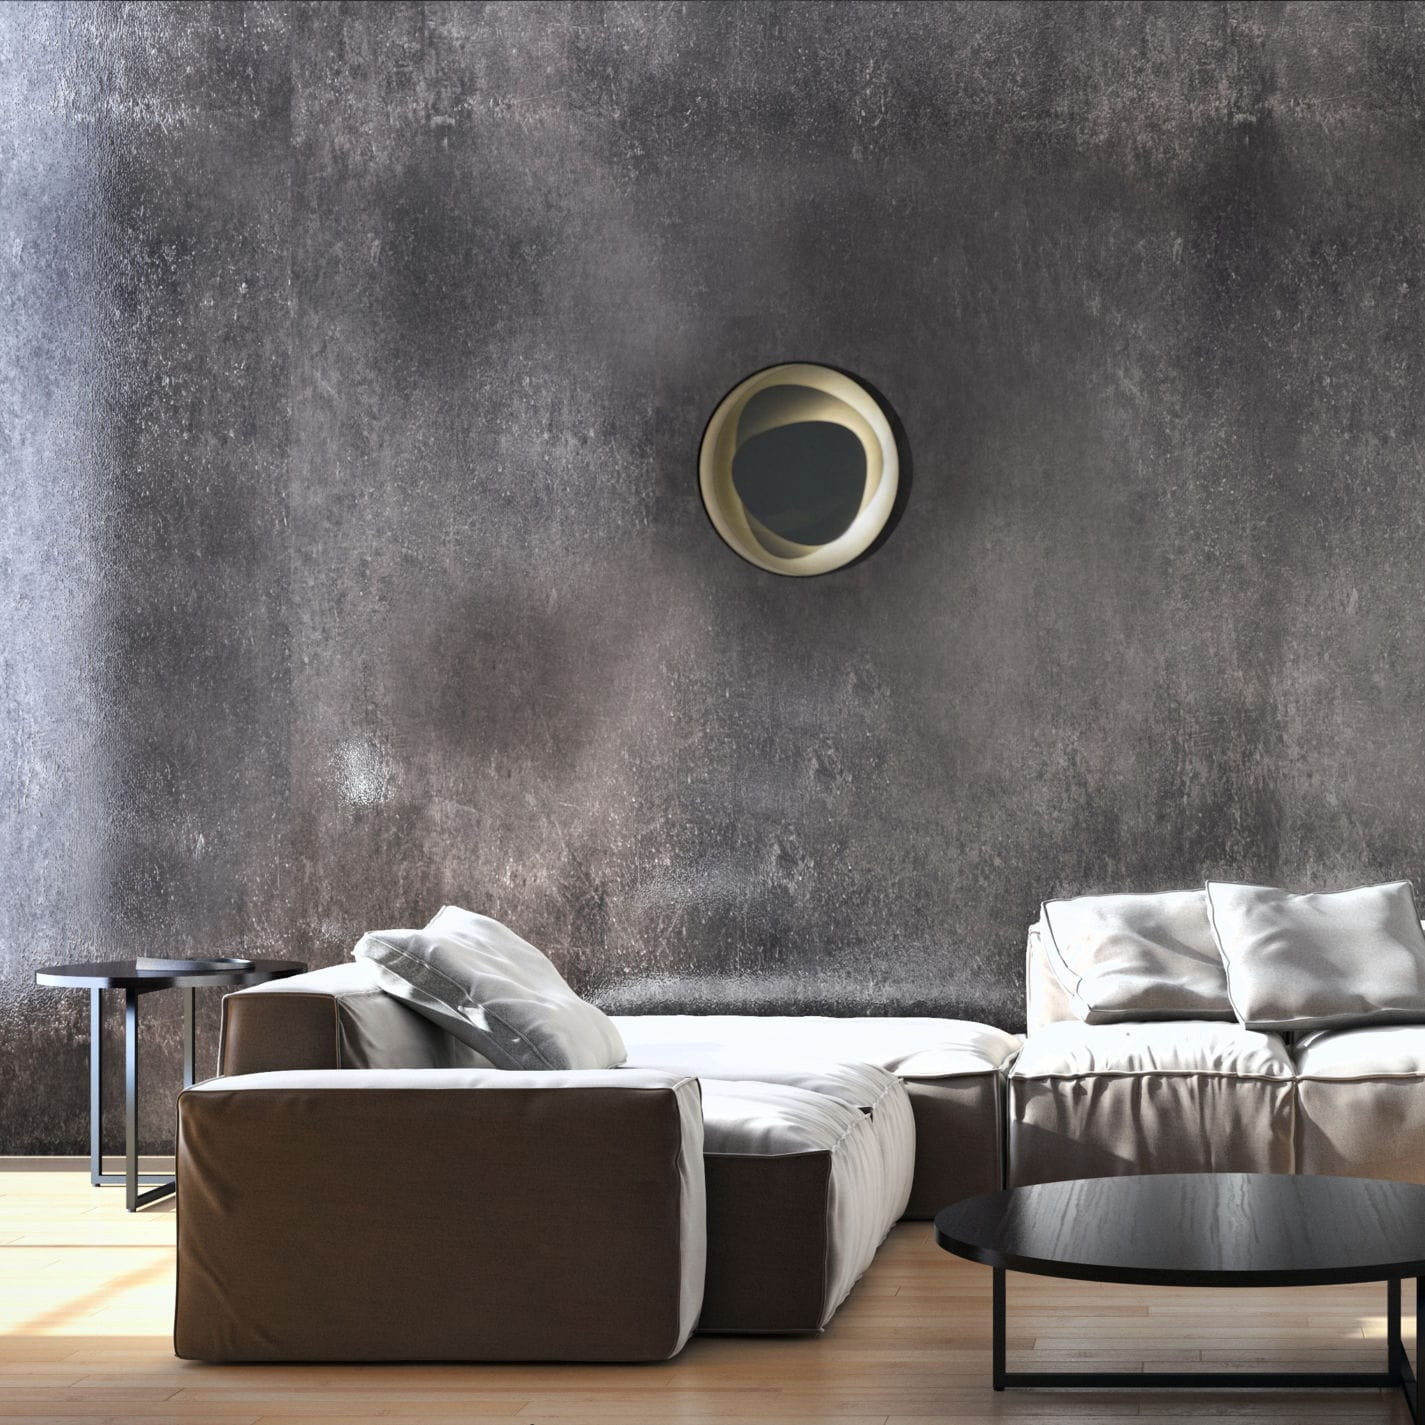 Contemporary Wall Light Brume Metropolight Living Room Copper Alloy